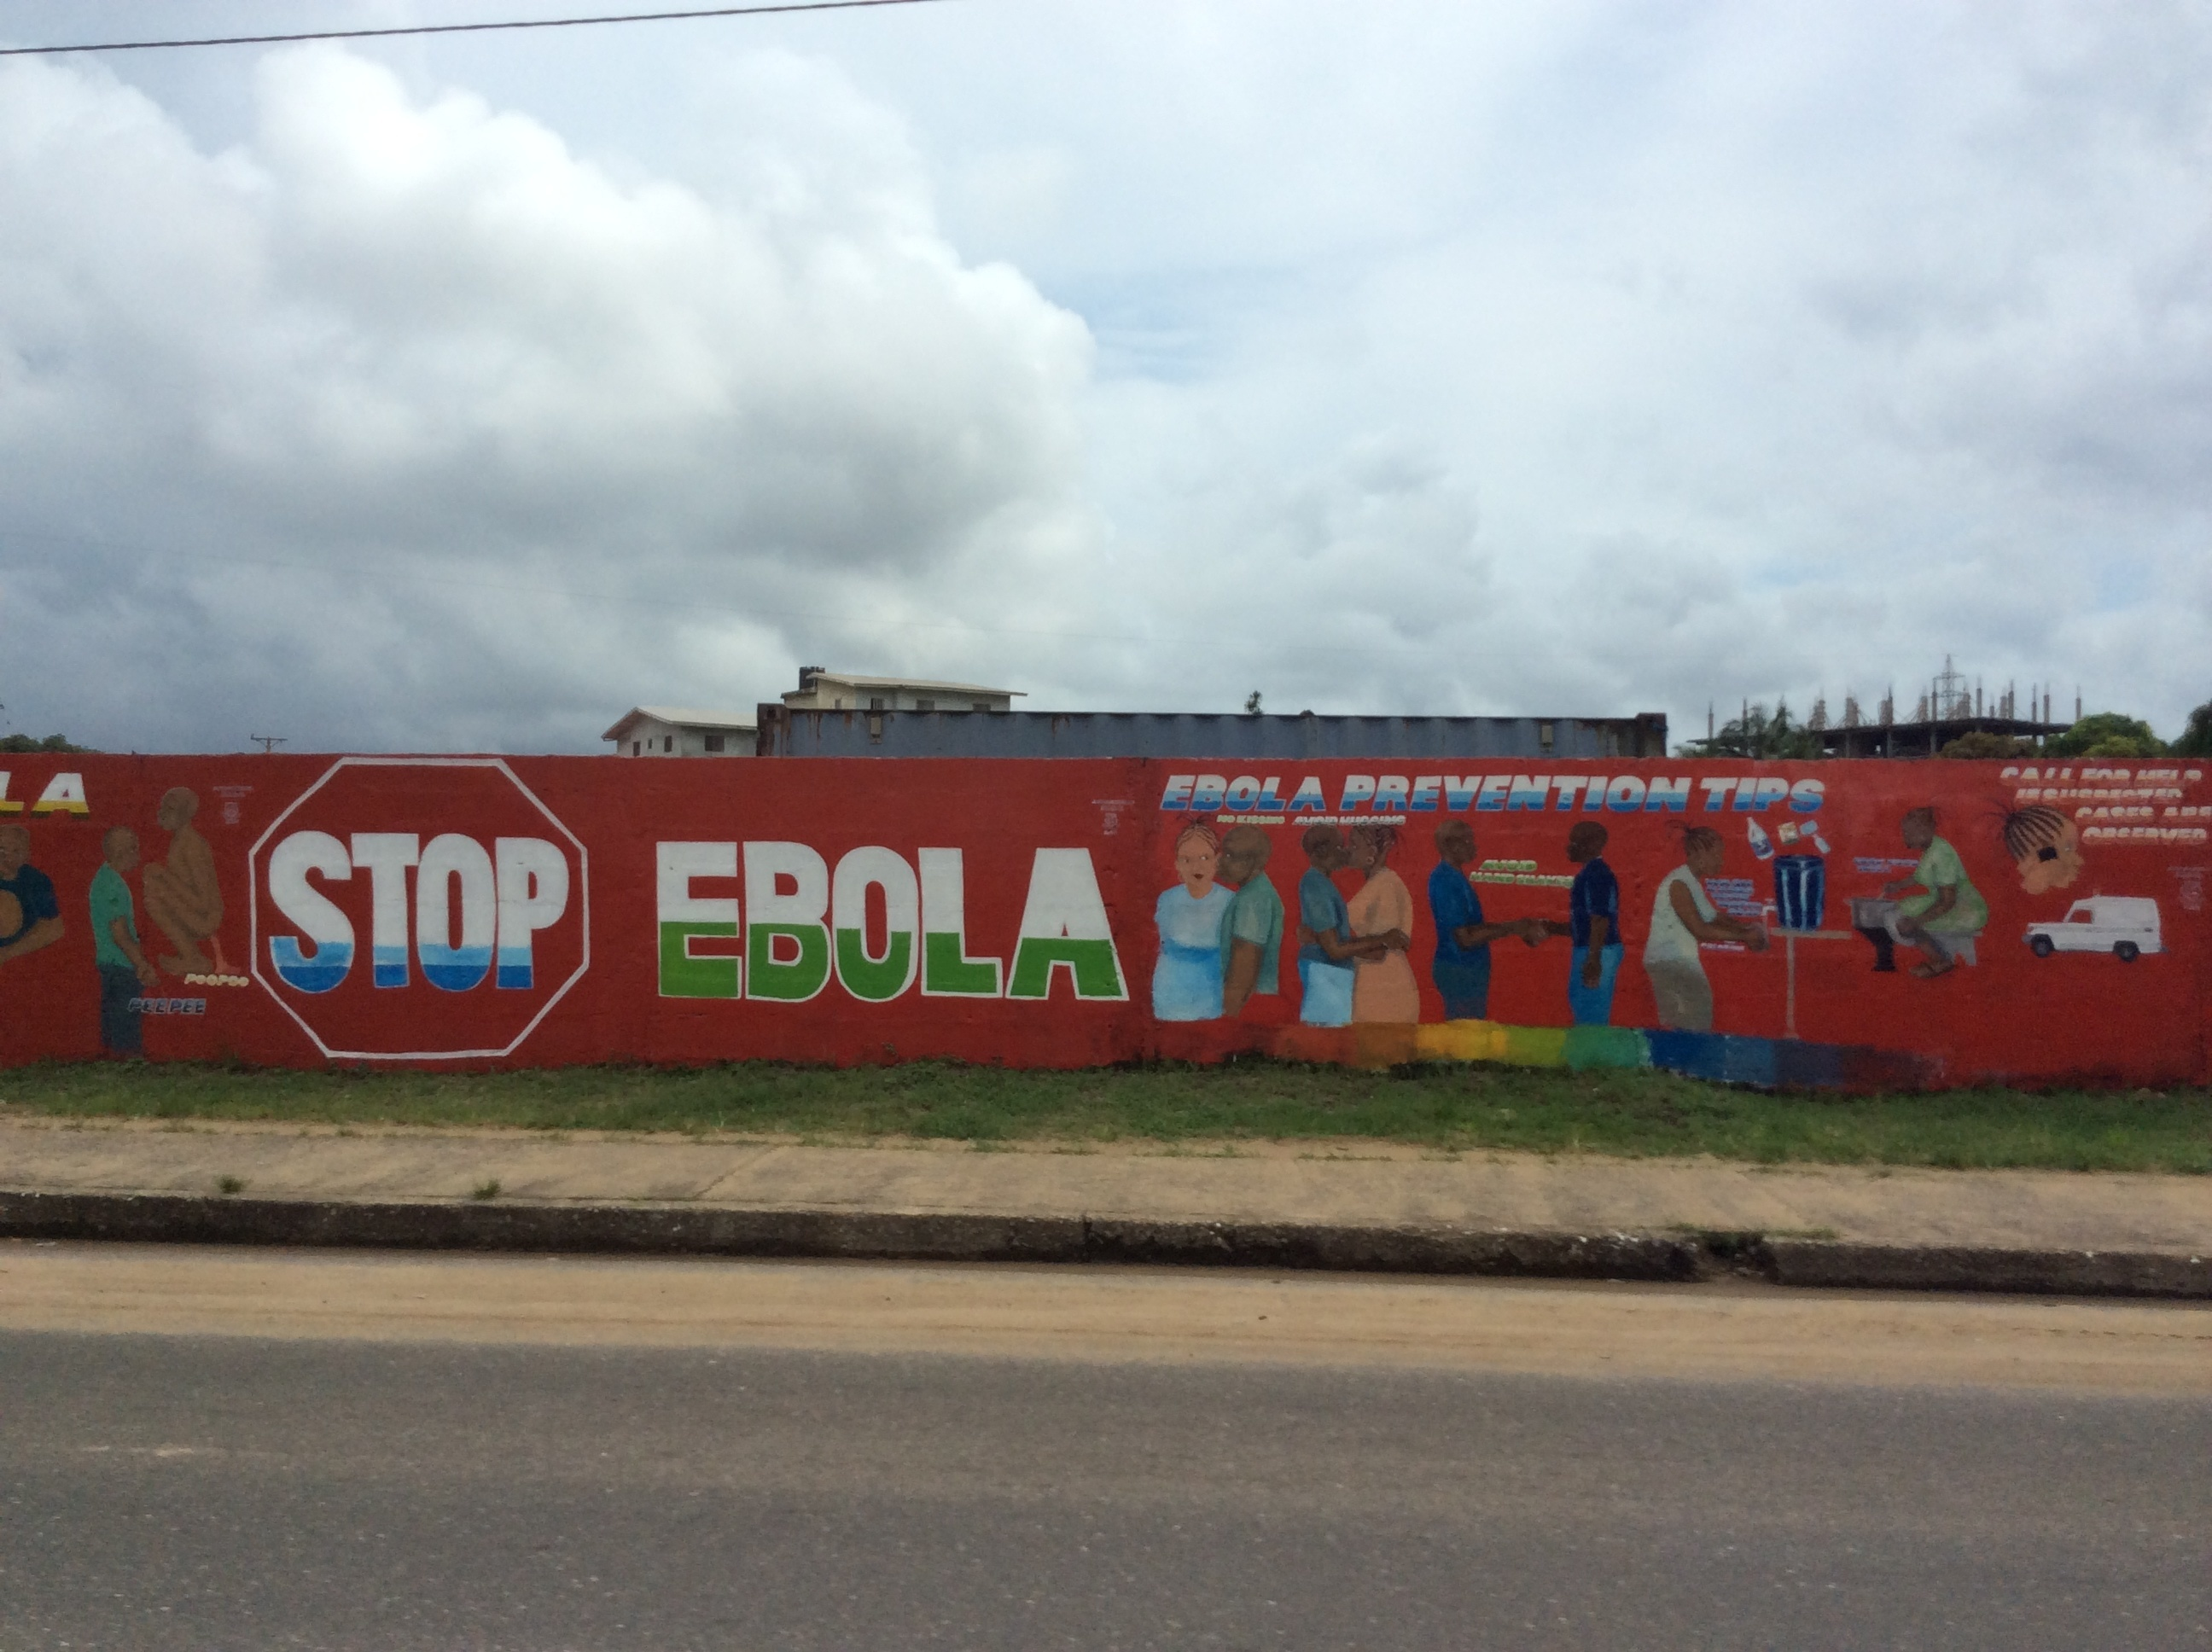 A mural at the outskirts of Monrovia, Liberia, during the Ebola outbreak that affected thousands of Liberians in 2014 and 2015. Aylward was put in charge of the international response to the outbreak after earlier WHO efforts—hobbled by years of budget and staffing cuts—were criticized as tentative and inadequate. (U.S. Army photo by U.S. Army Corps of Engineers, Savannah District)